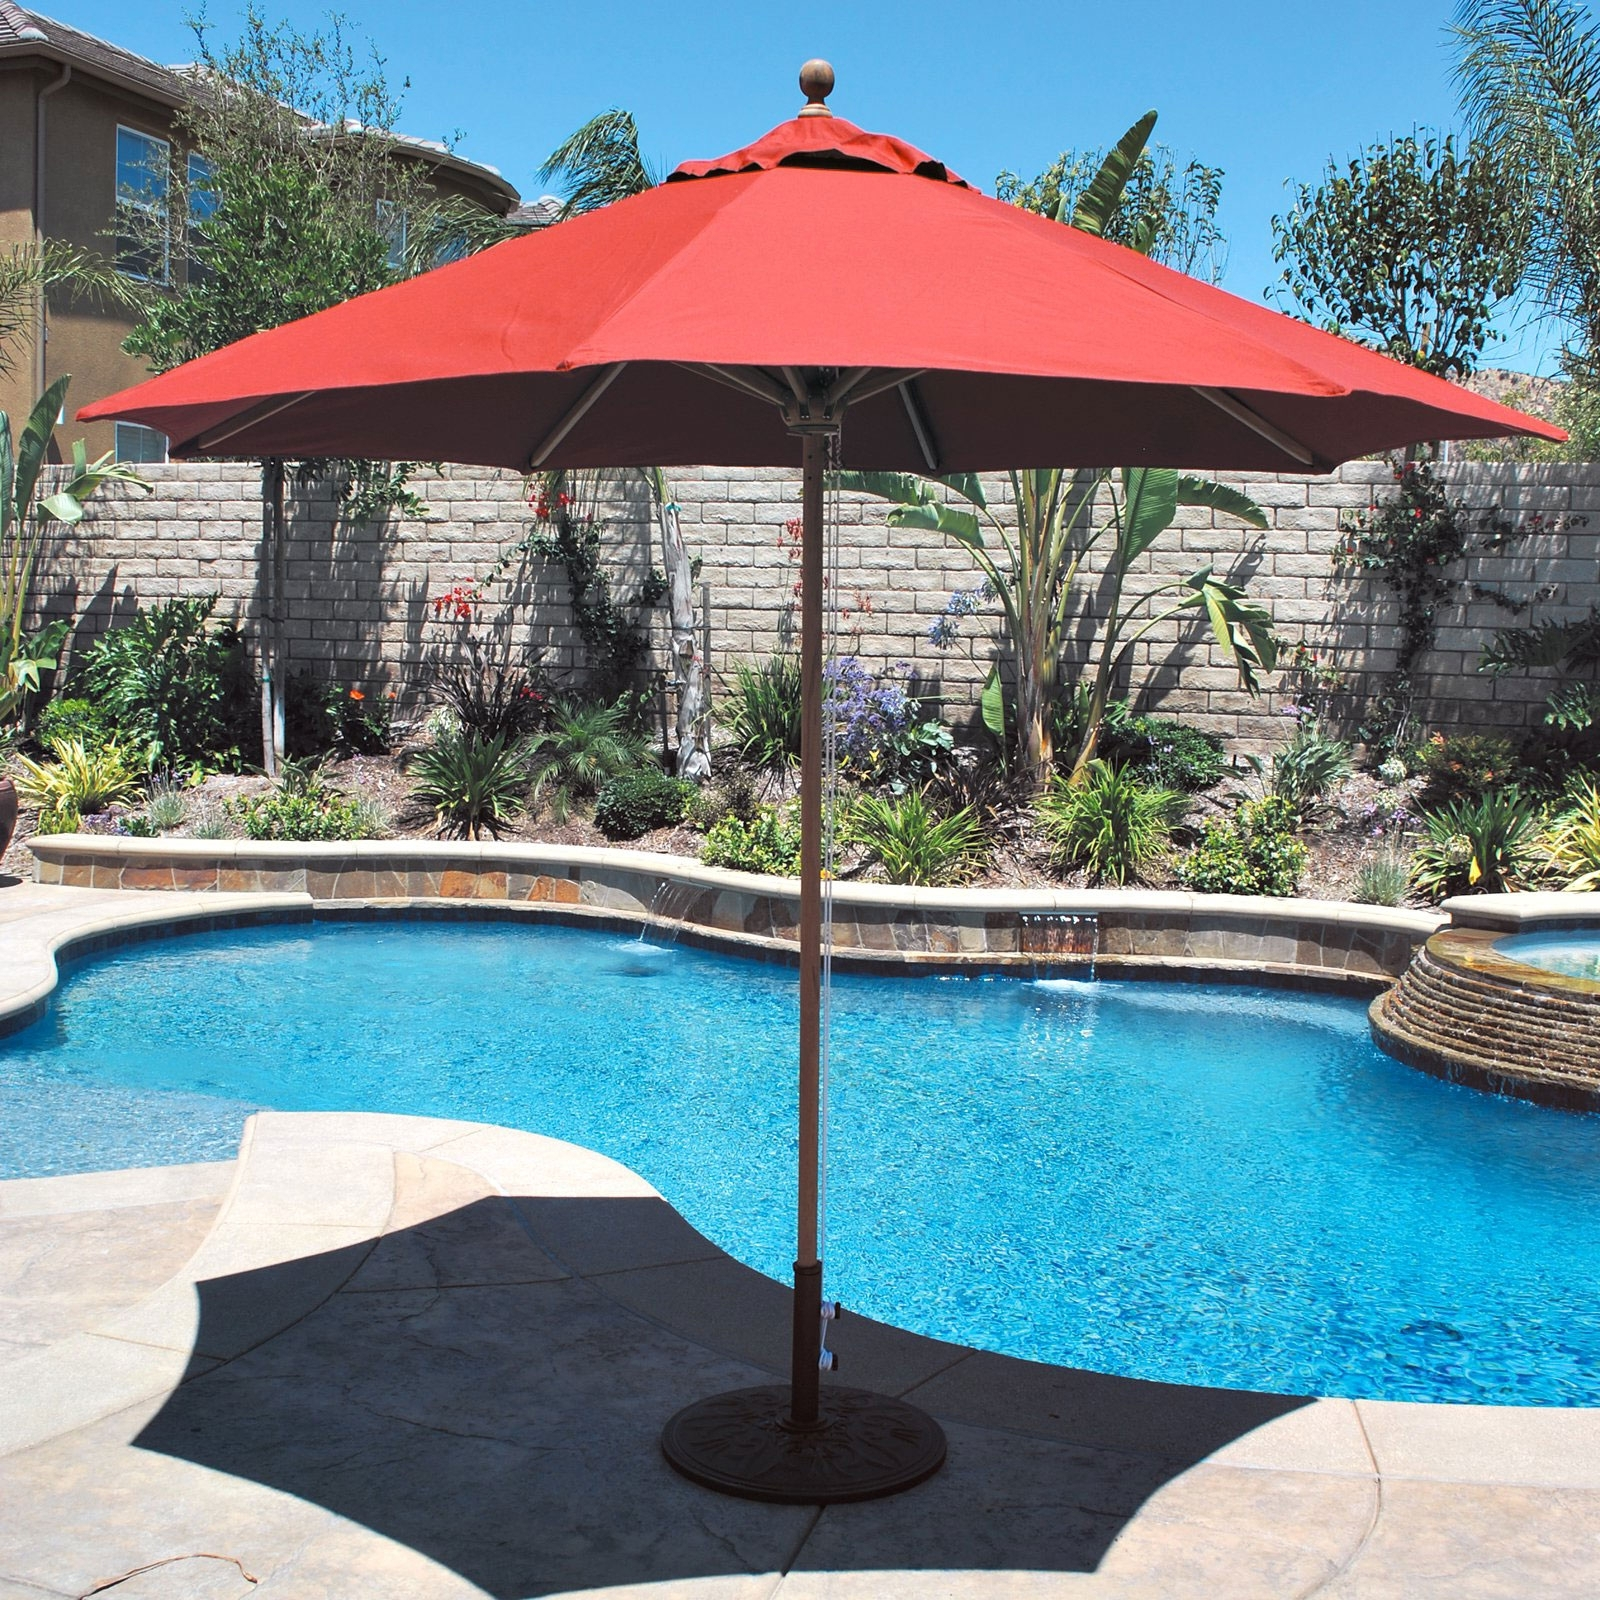 Fashionable Famed Sunbrella Commercial Grade Aluminum Wind Resistant Patio Inside Free Standing Patio Umbrellas (View 8 of 20)